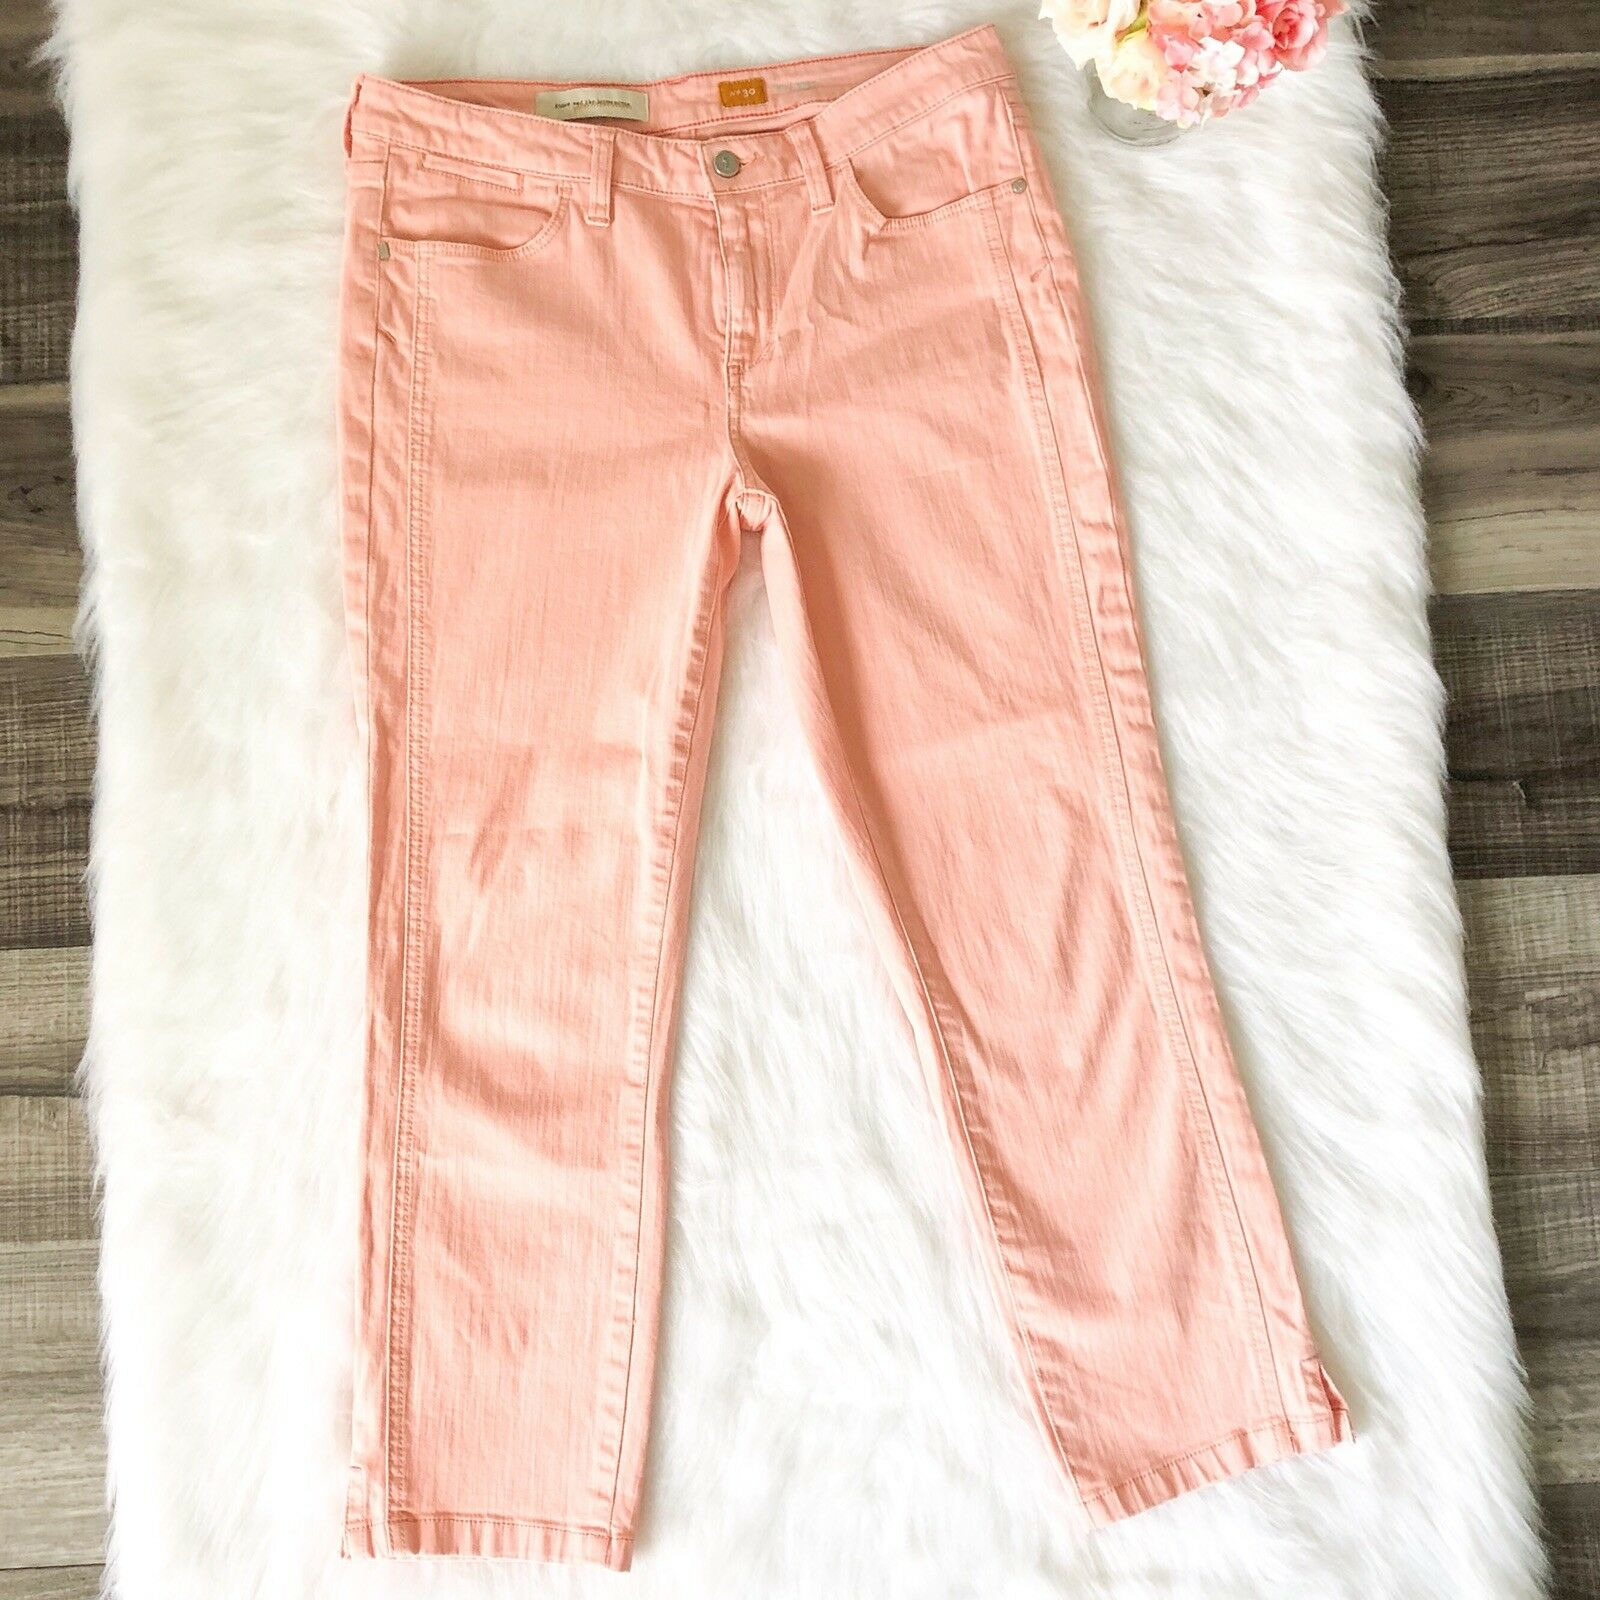 Anthropologie Womens Jeans Pilcro and the Letterpress Stet Peach Cropped Size 30